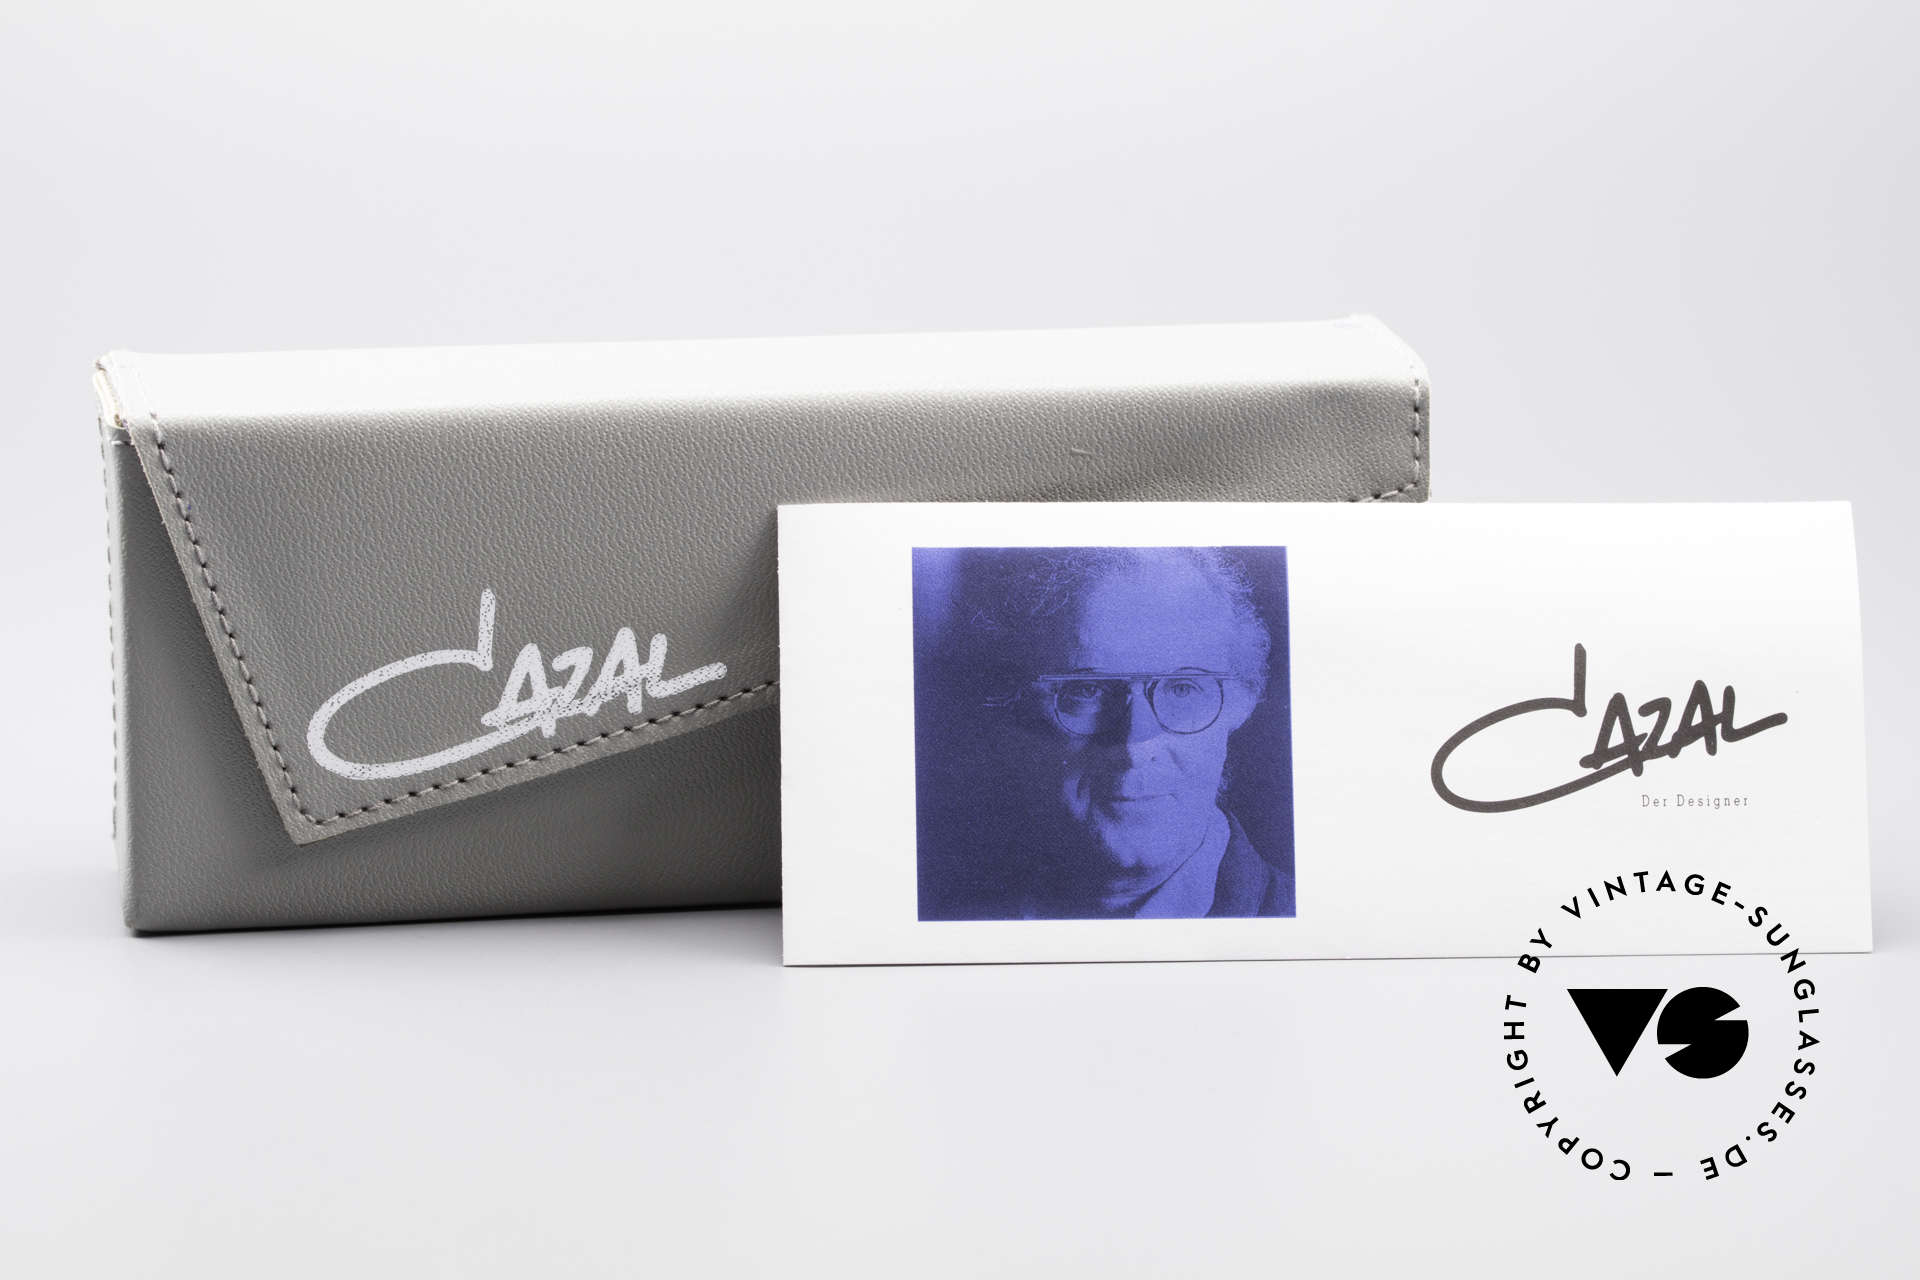 Cazal 648 90's Cari Zalloni Vintage Glasses, NO RETRO EYEWEAR, but a 28 years old ORIGINAL!, Made for Men and Women